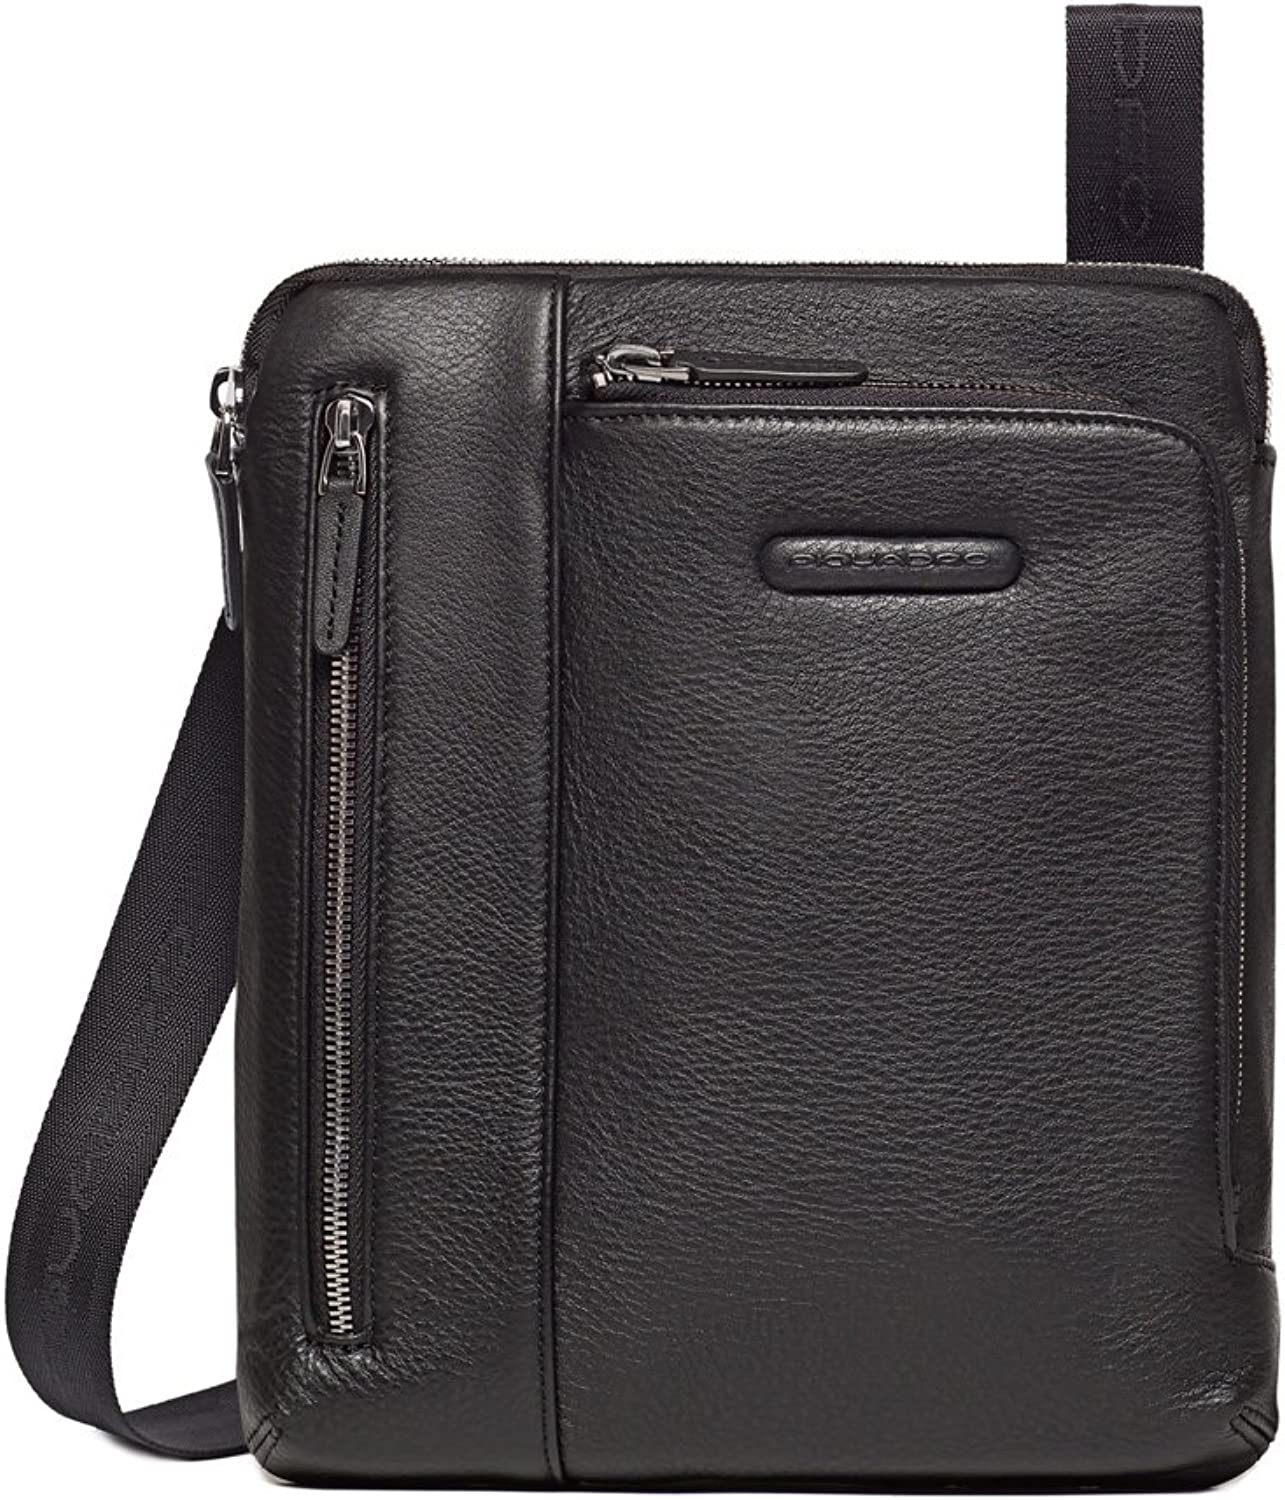 Piquadro iPad Air Shoulder Pocket Bag with Pocket For MP3 Player, Black, One Size